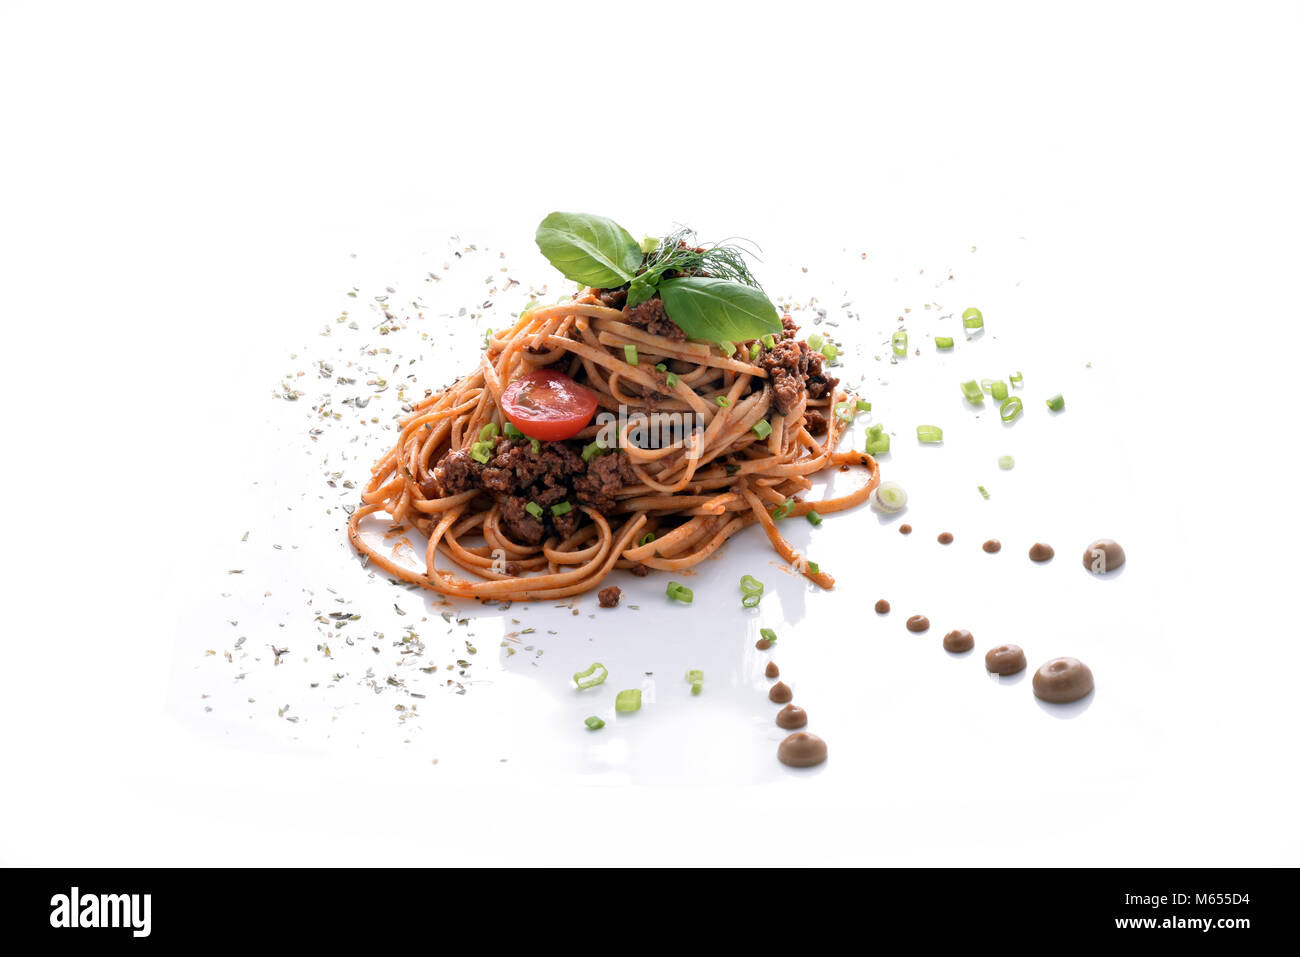 Pasta bolognese with ground meat - Stock Image